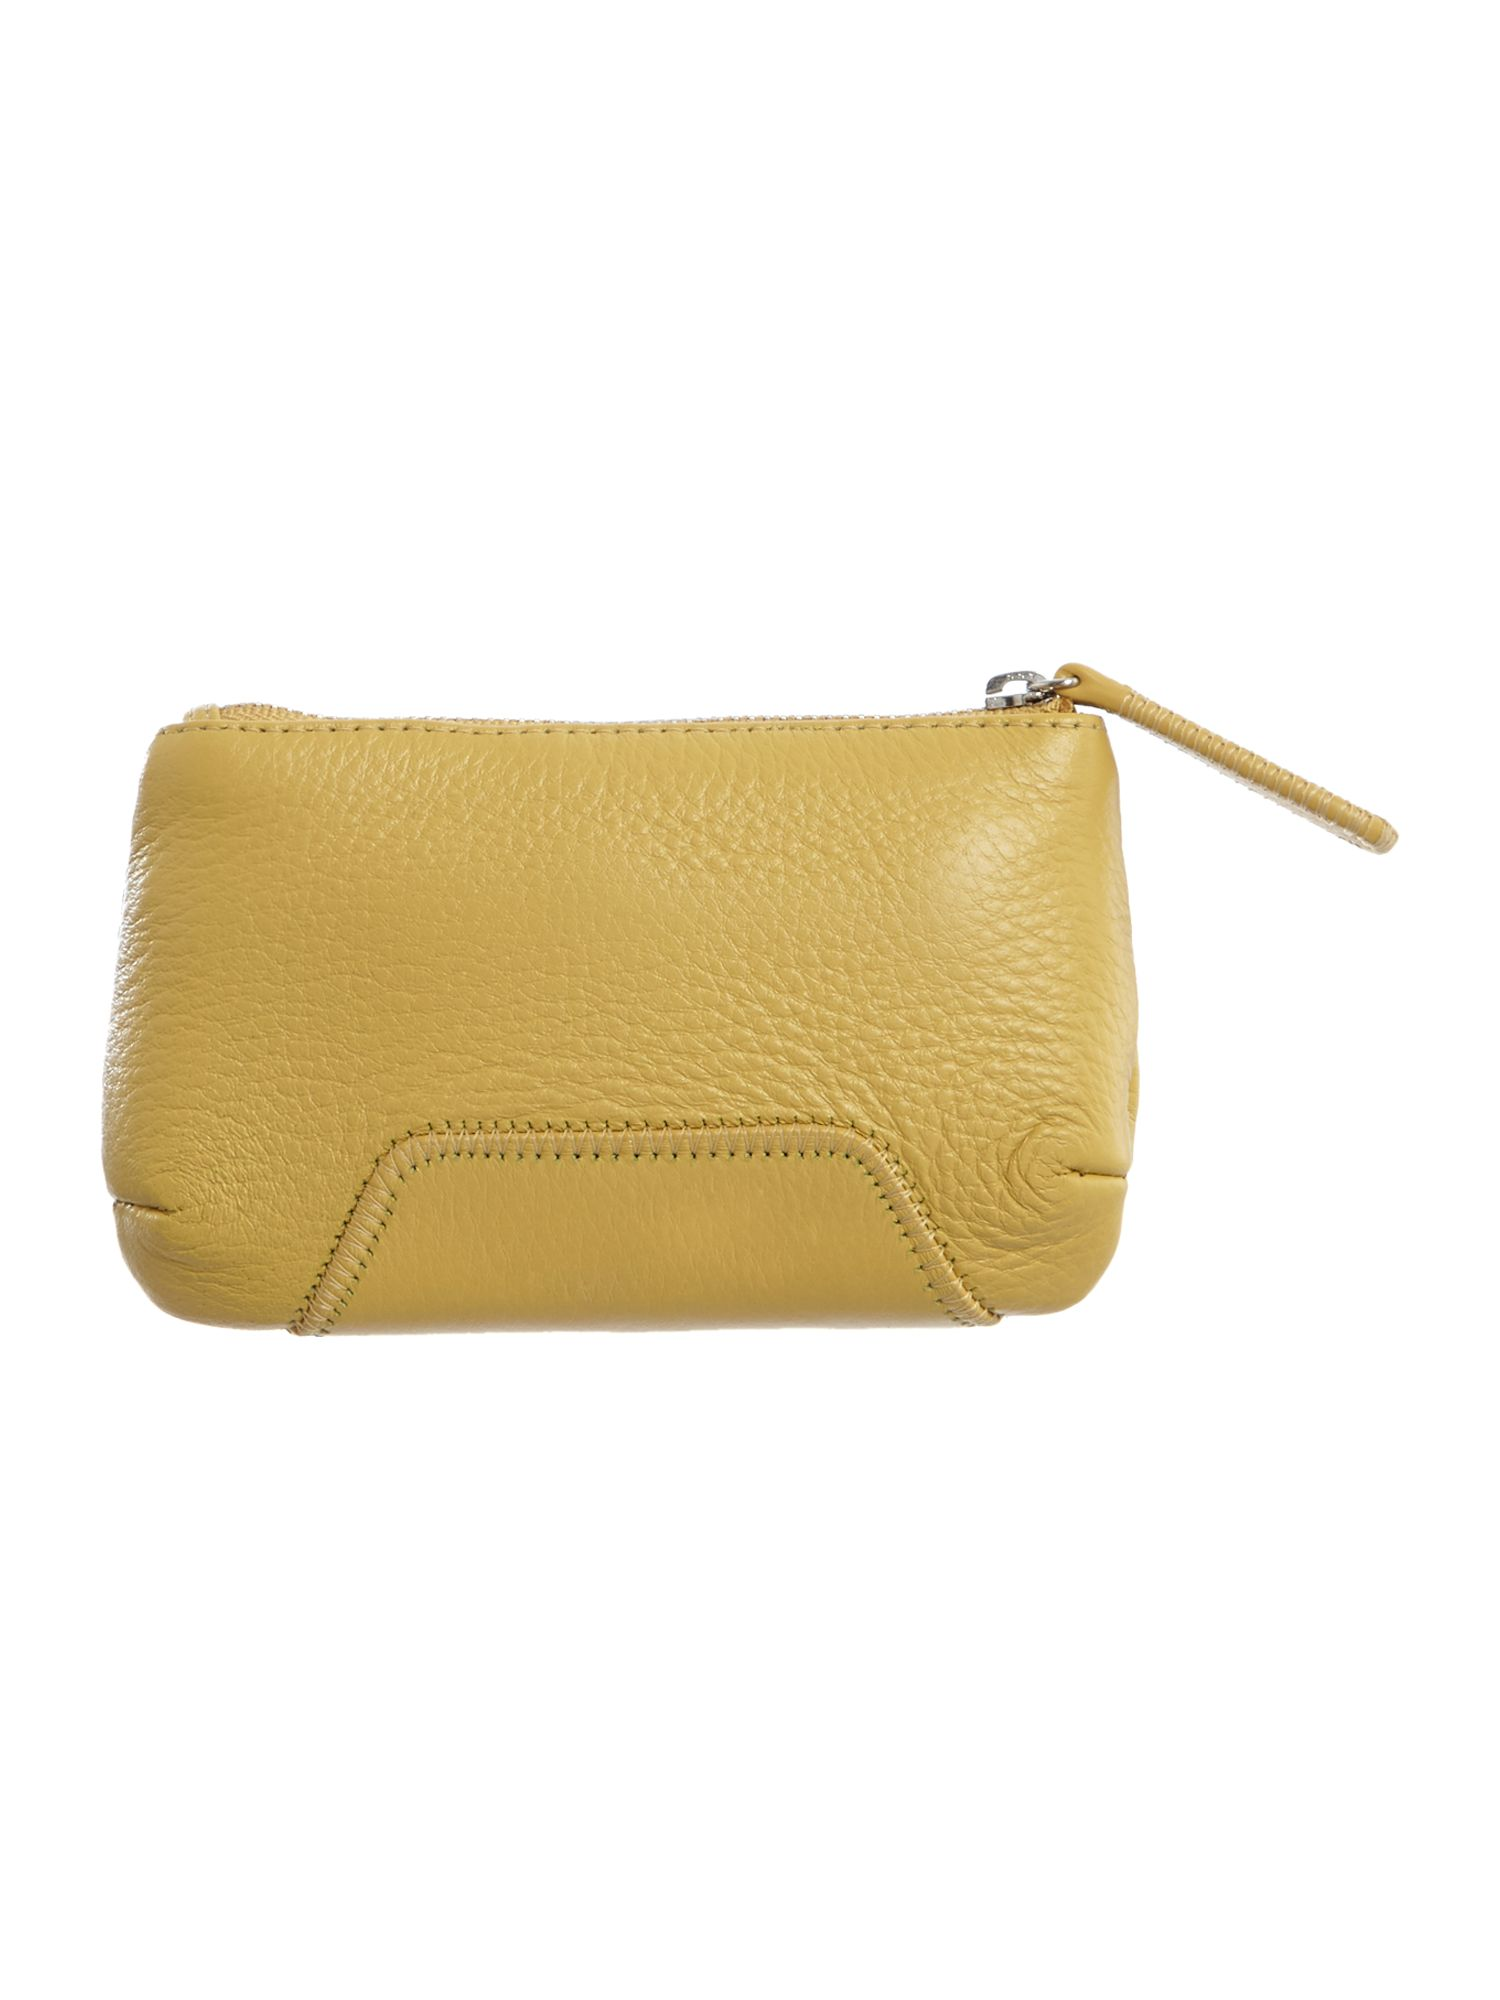 Yellow medium zip pouch purse